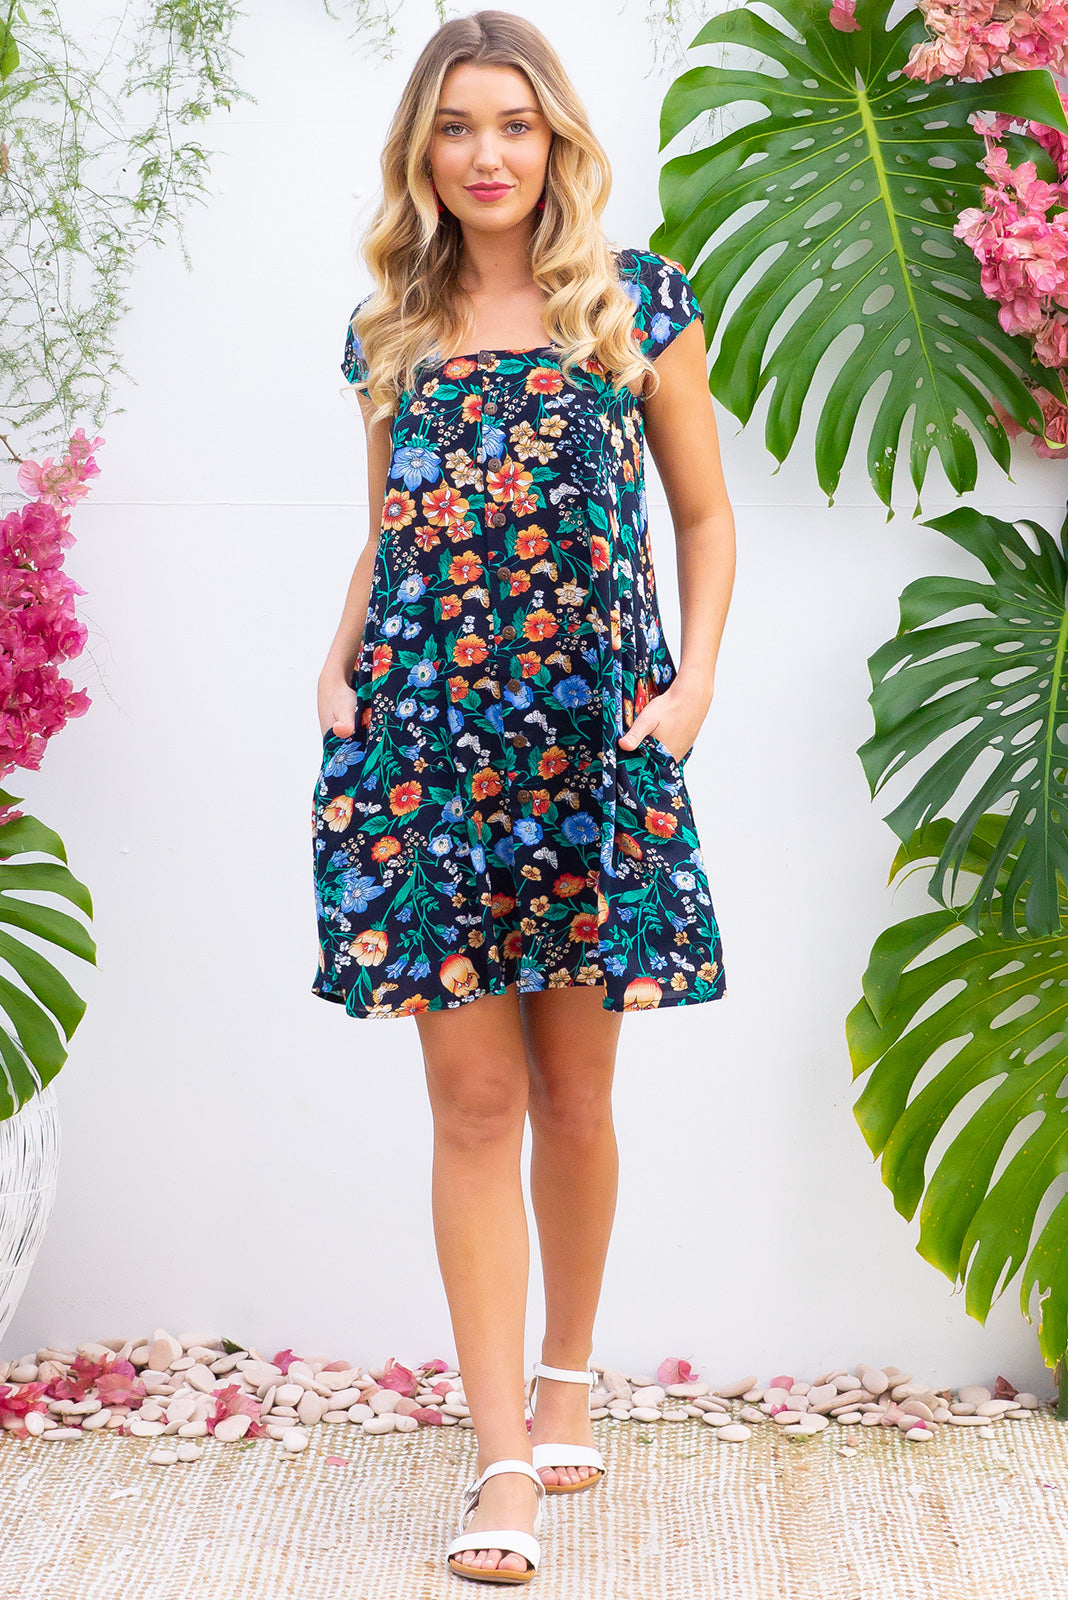 Etta Flight Navy Dress with a gathered cap sleeve, full button front and deep side pockets comes with a self coloured belt and is made from a dark navy and bright floral printed woven 100% rayon